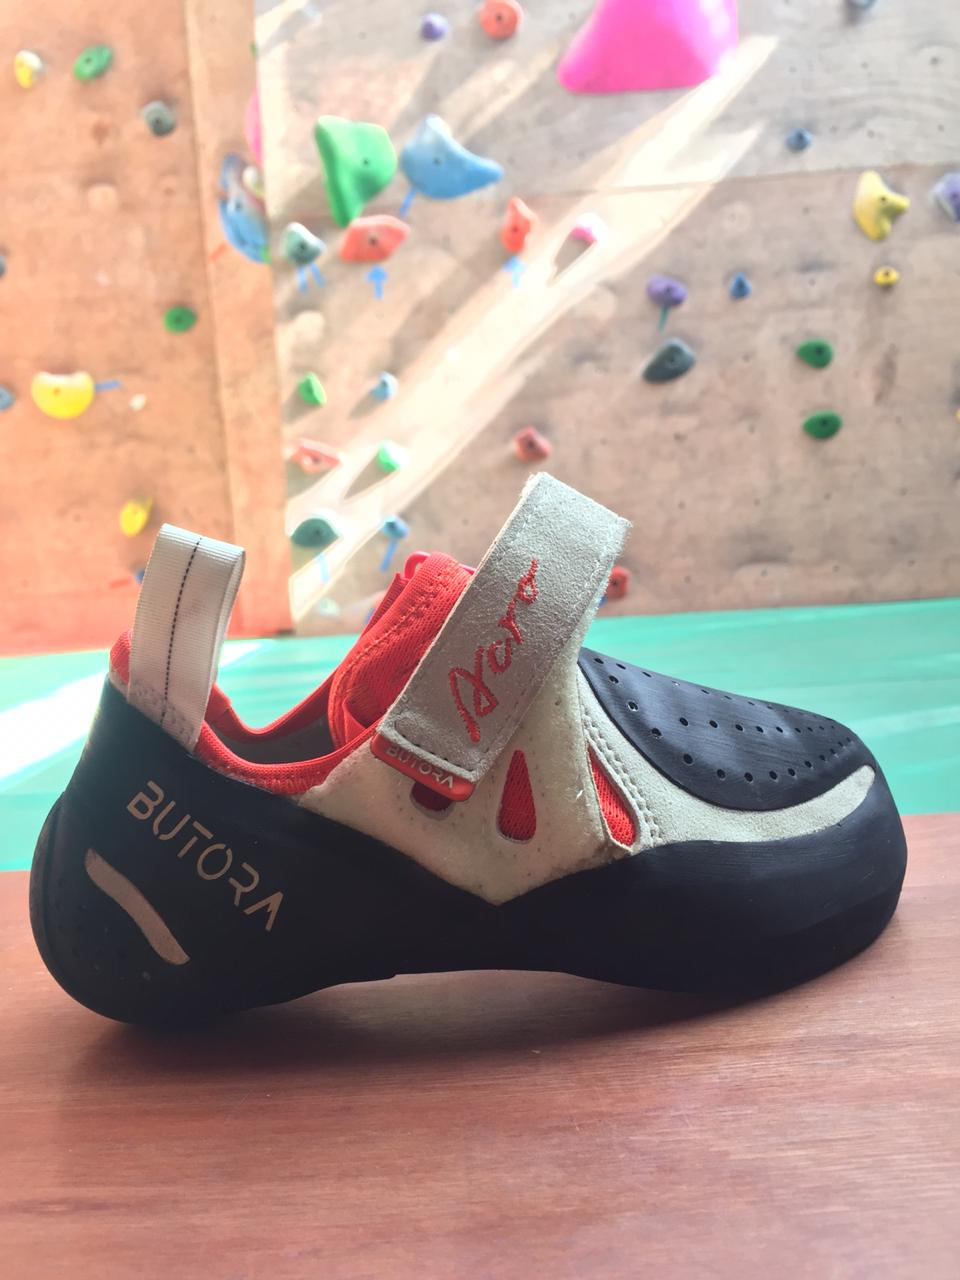 Burota Climbing Shoes Review